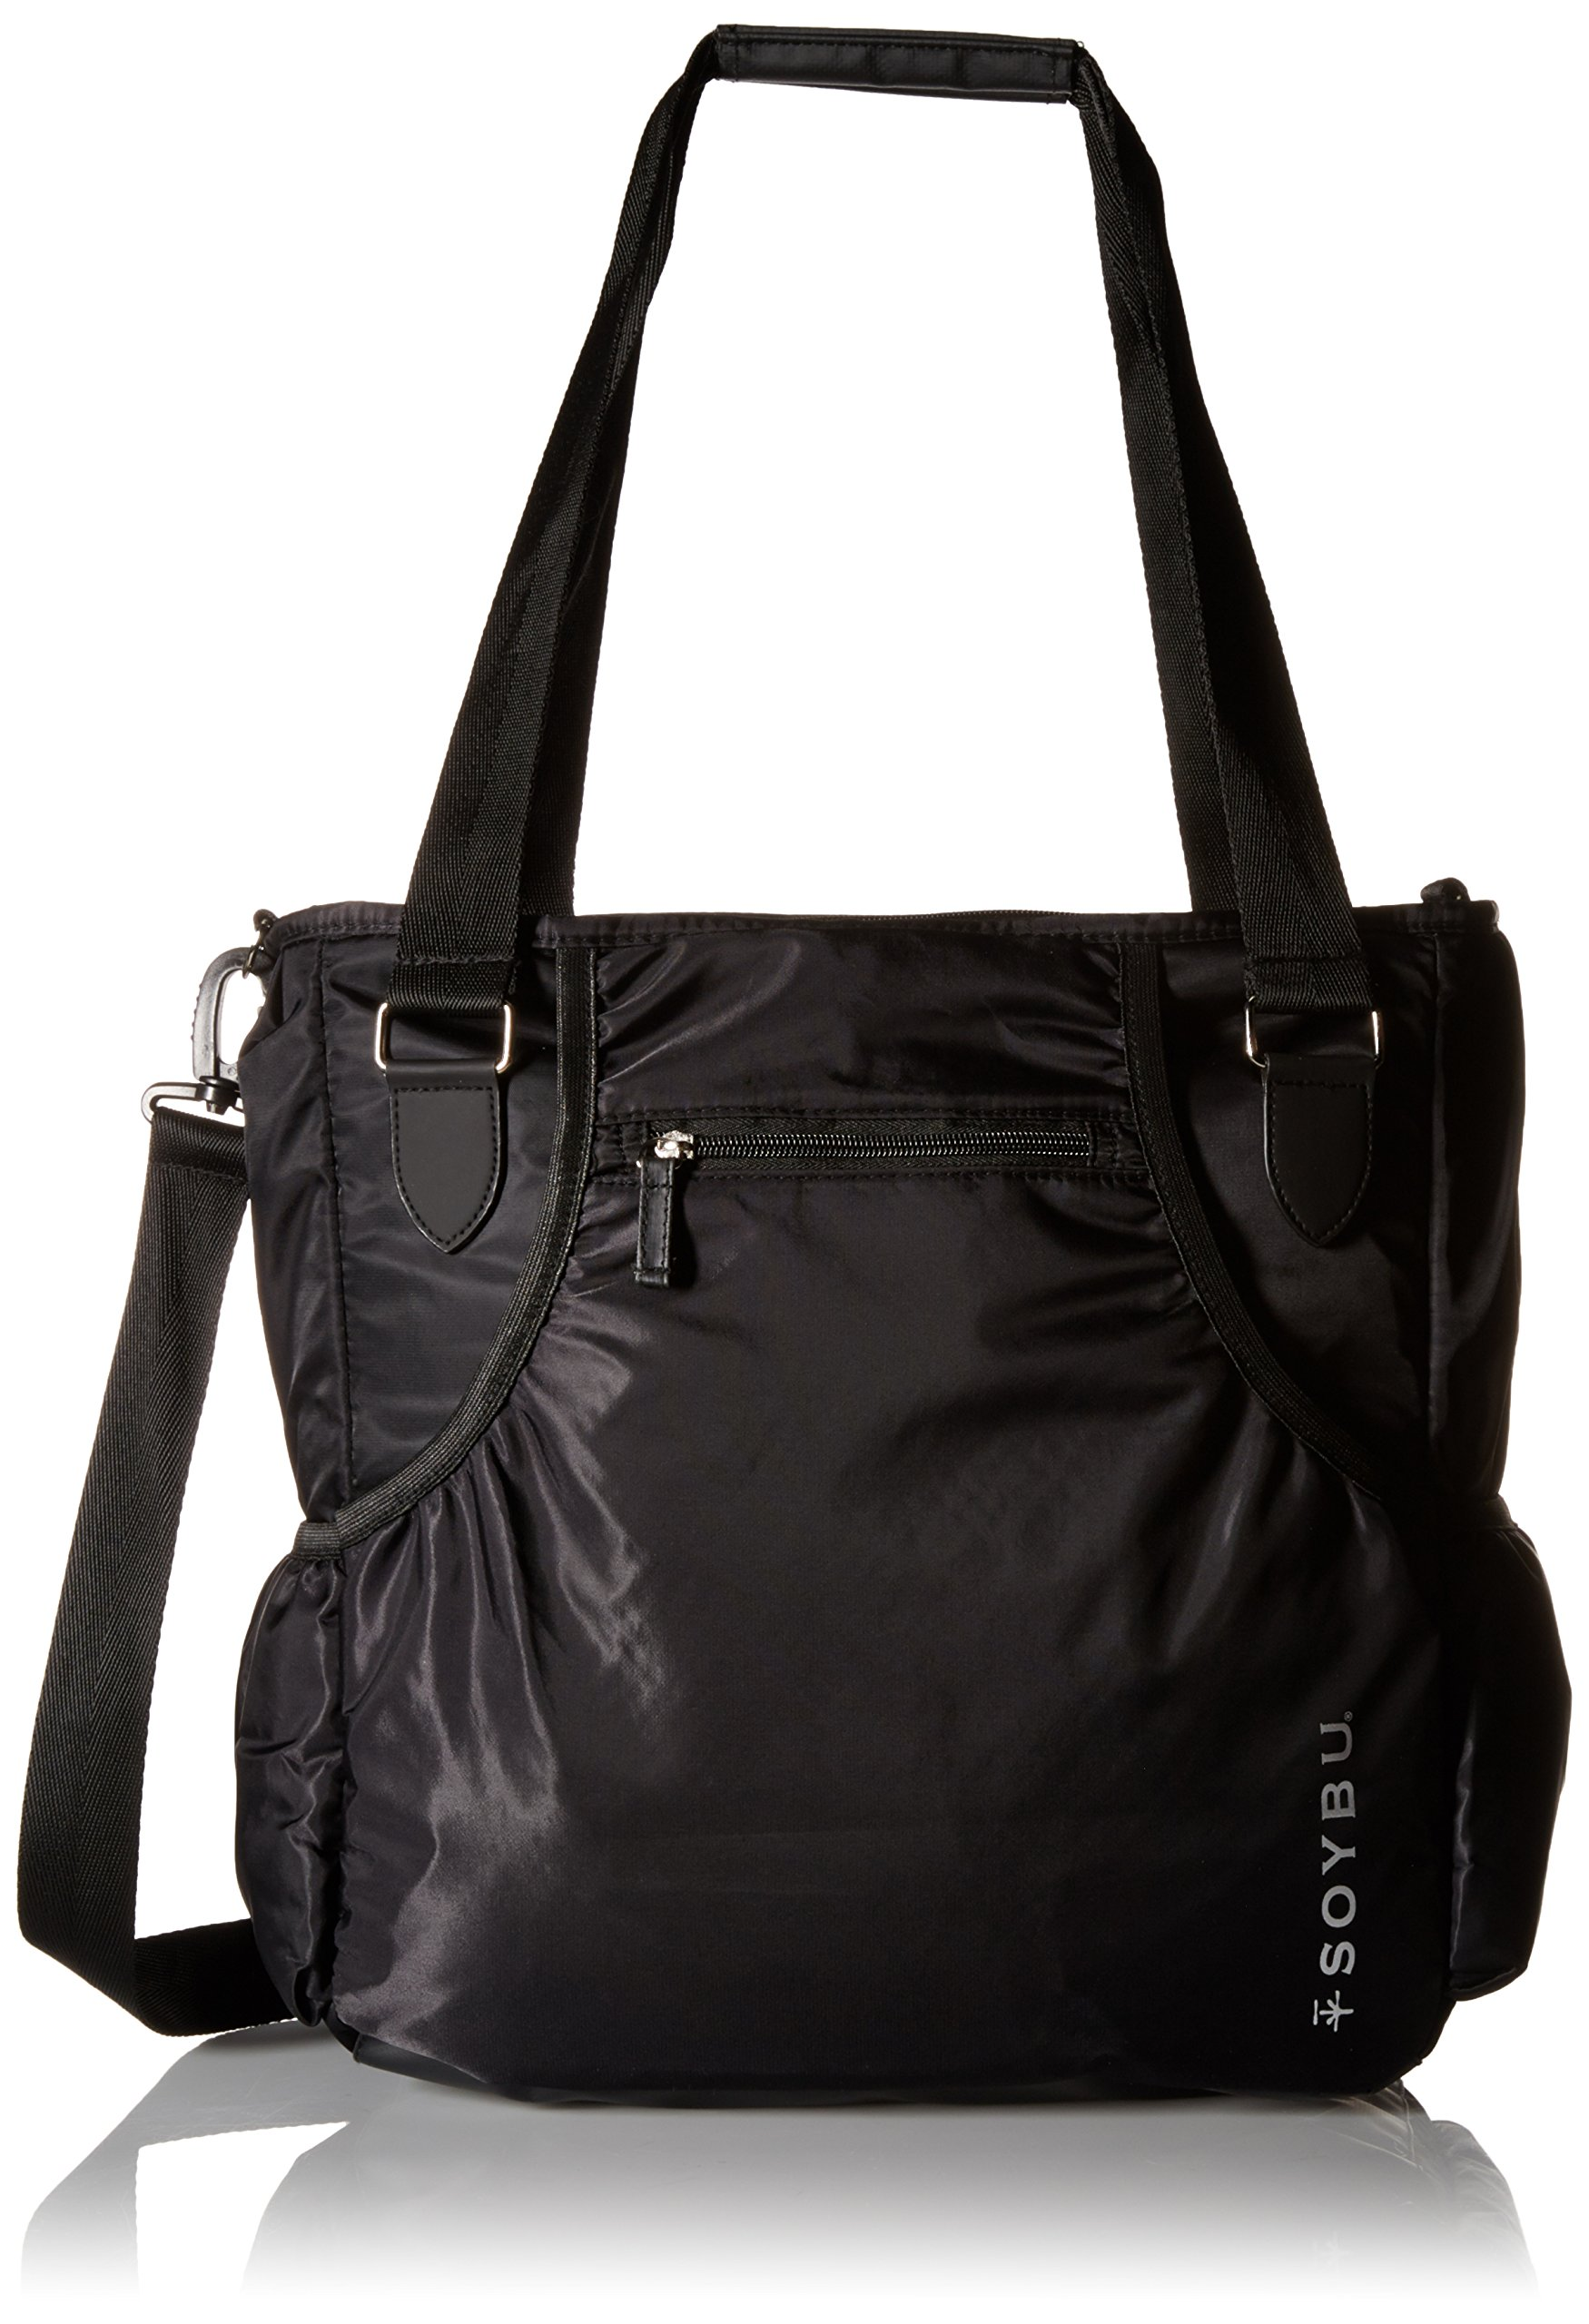 Soybu SY1323 Women's Moksha Tote Bag, Black, One Size